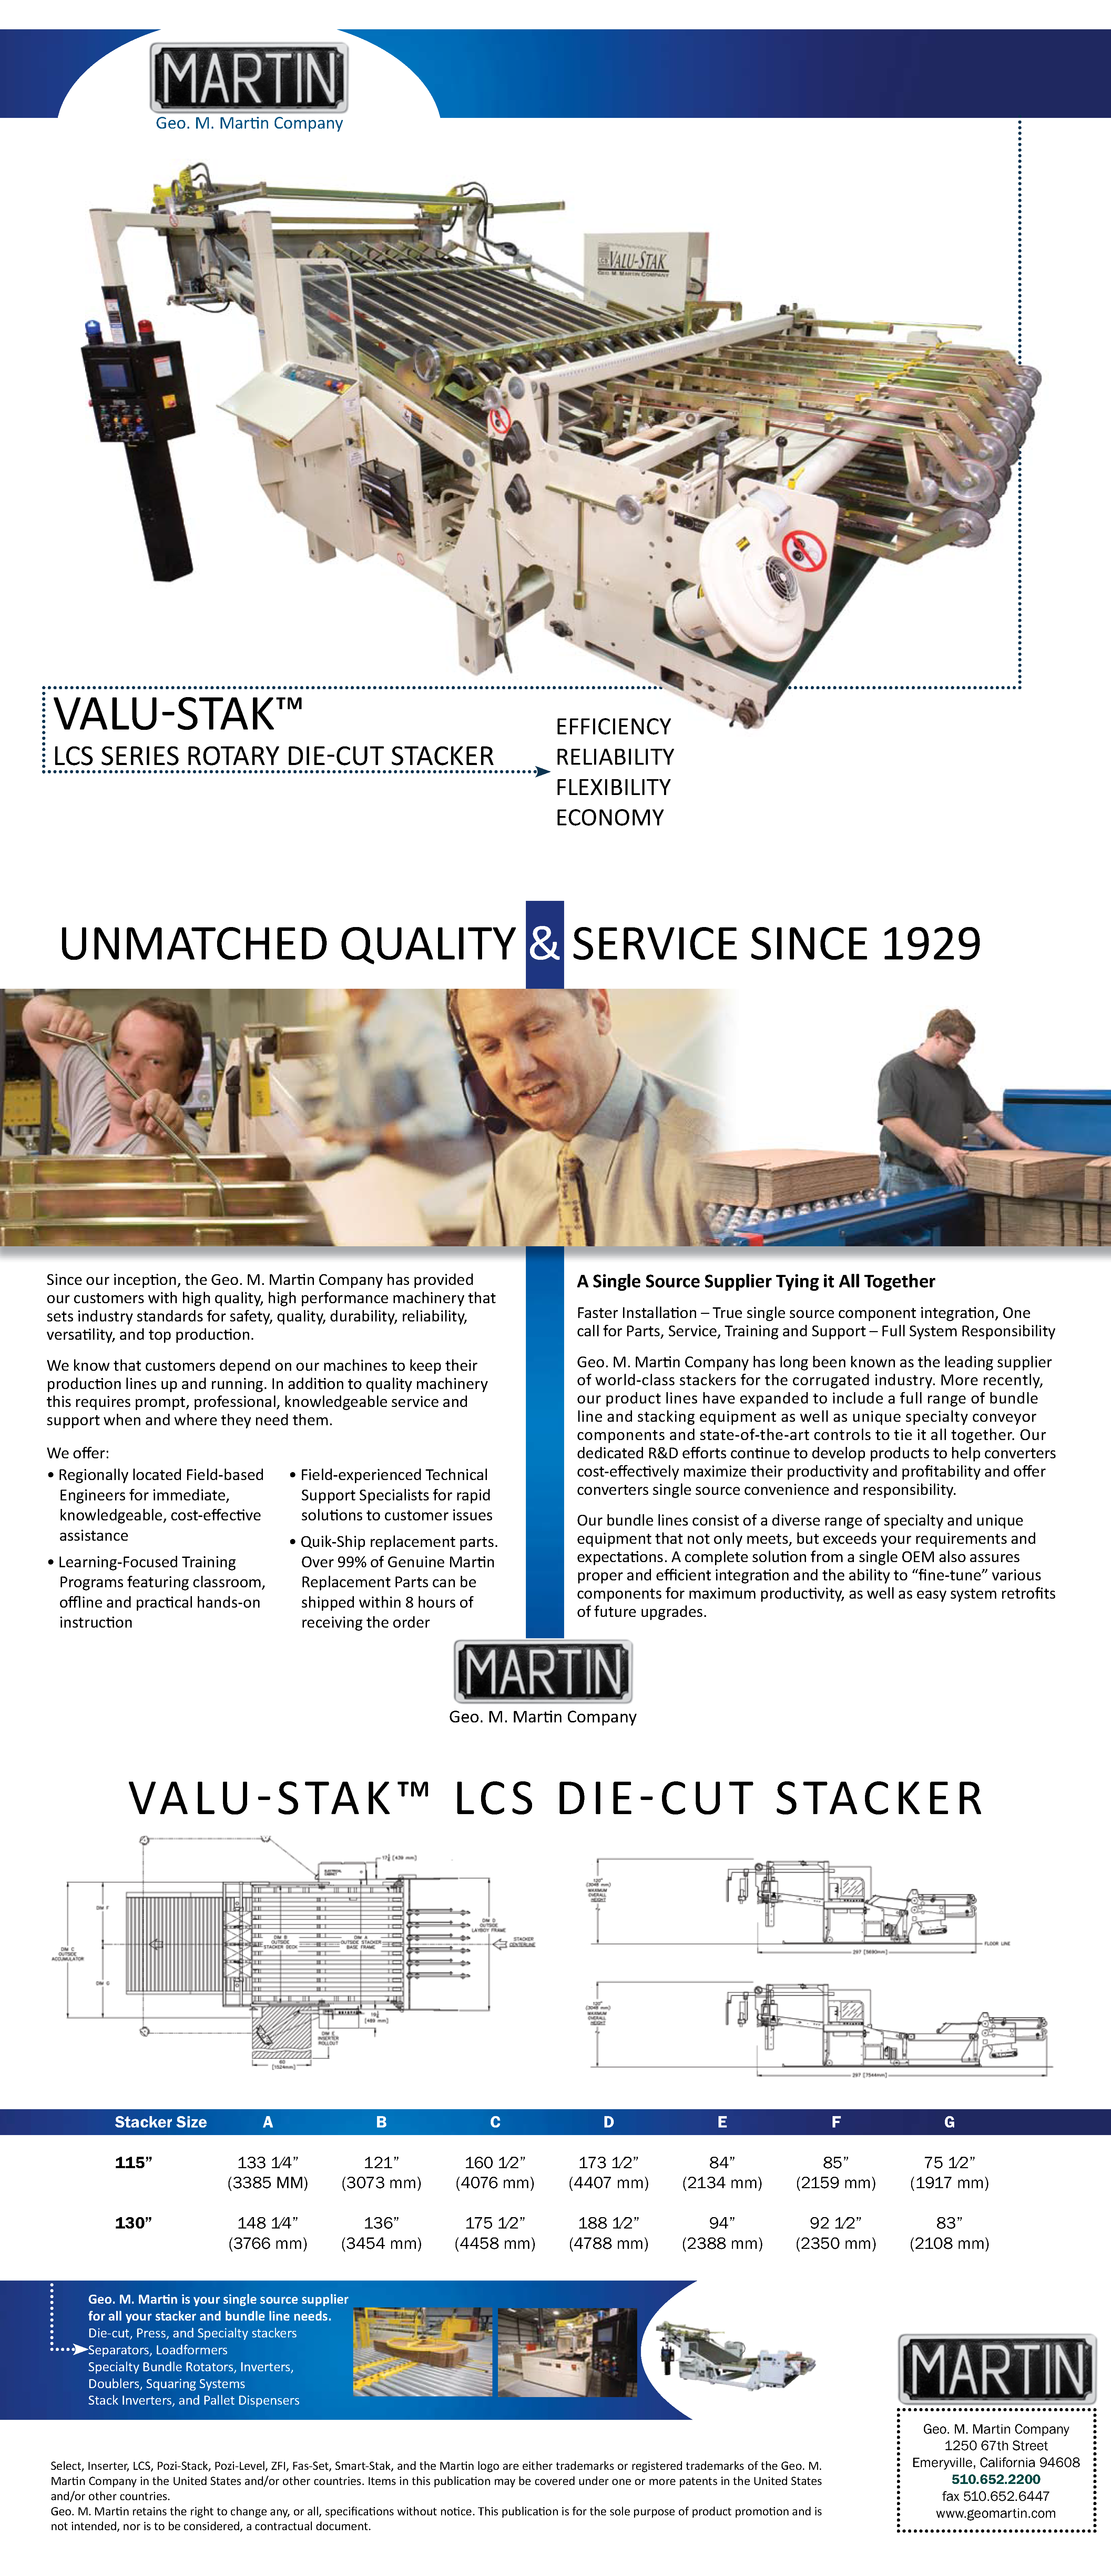 Learn more about the Valu-Stak LCS Rotary Die Cutter Stacker in the Geo. M. Martin brochure!